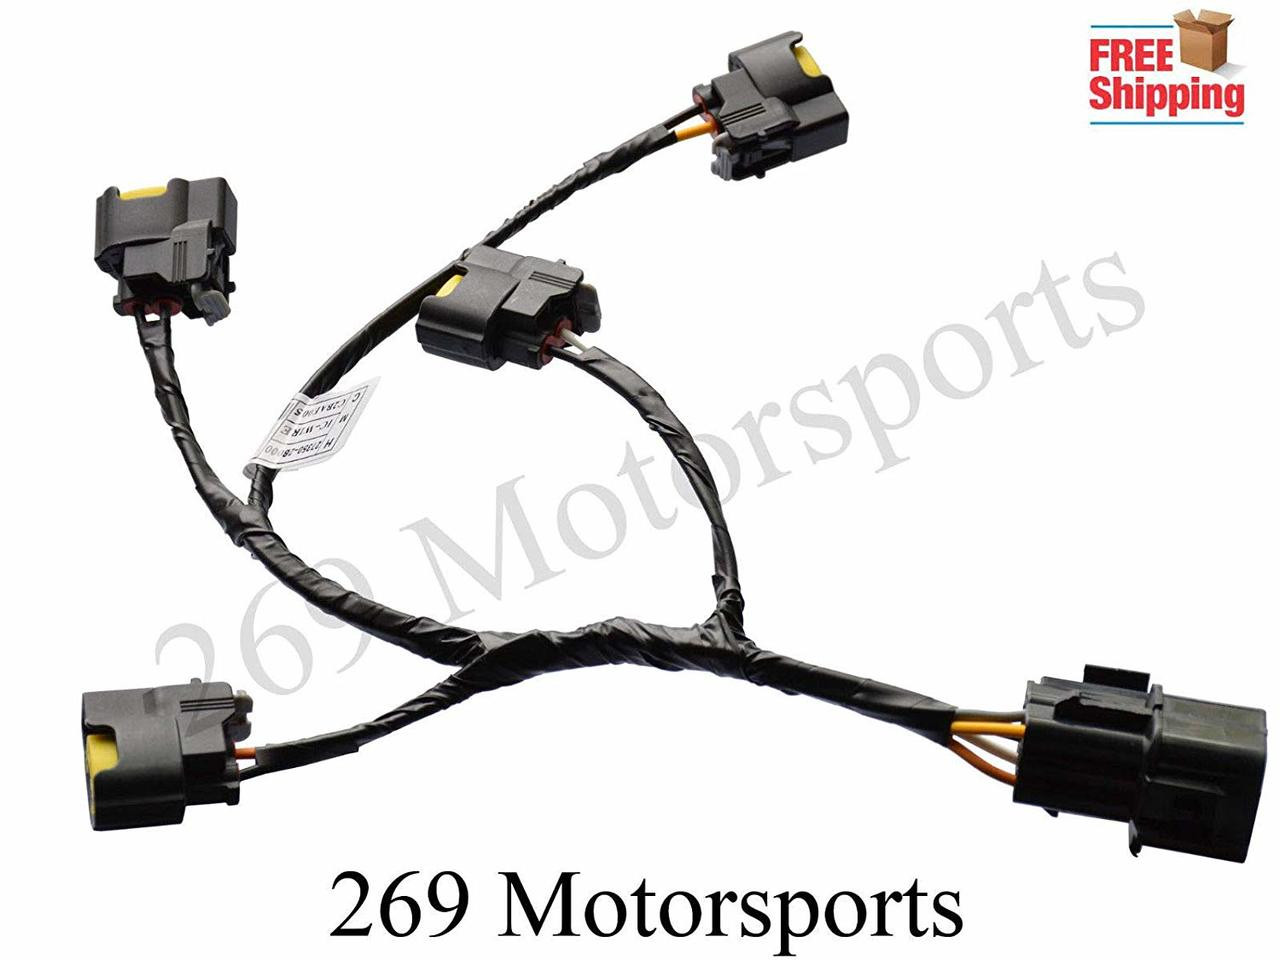 small resolution of ignition coil wire harness for 10 14 veloster rio soul 1 6l replaces 27350 2b000